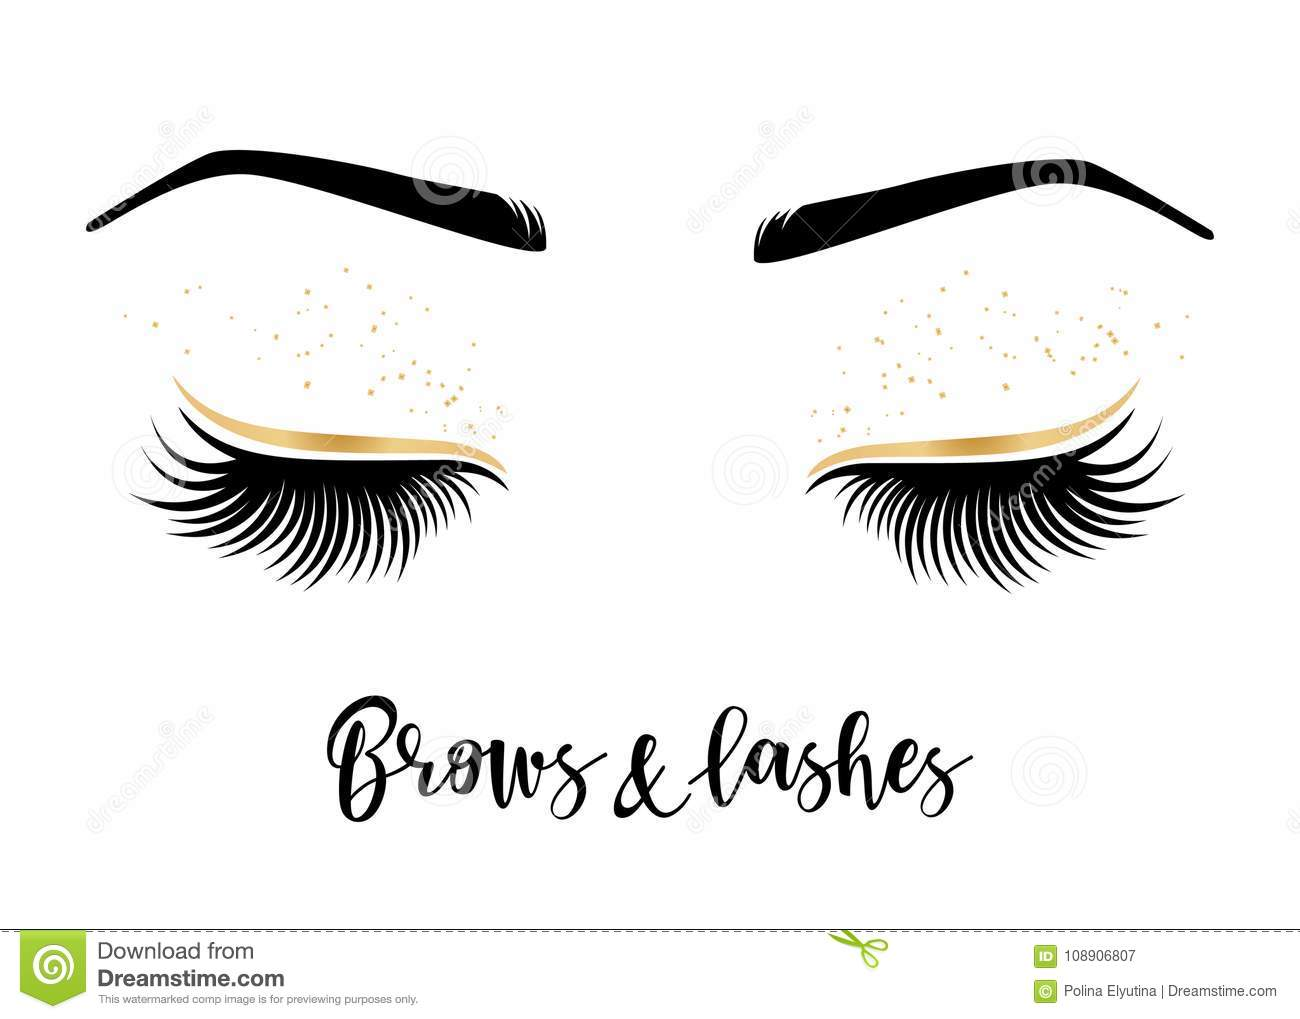 cbb74278ce4 Brows and lashes lettering. Vector illustration of lashes and brows. For  beauty salon, lash extensions maker, brow master.